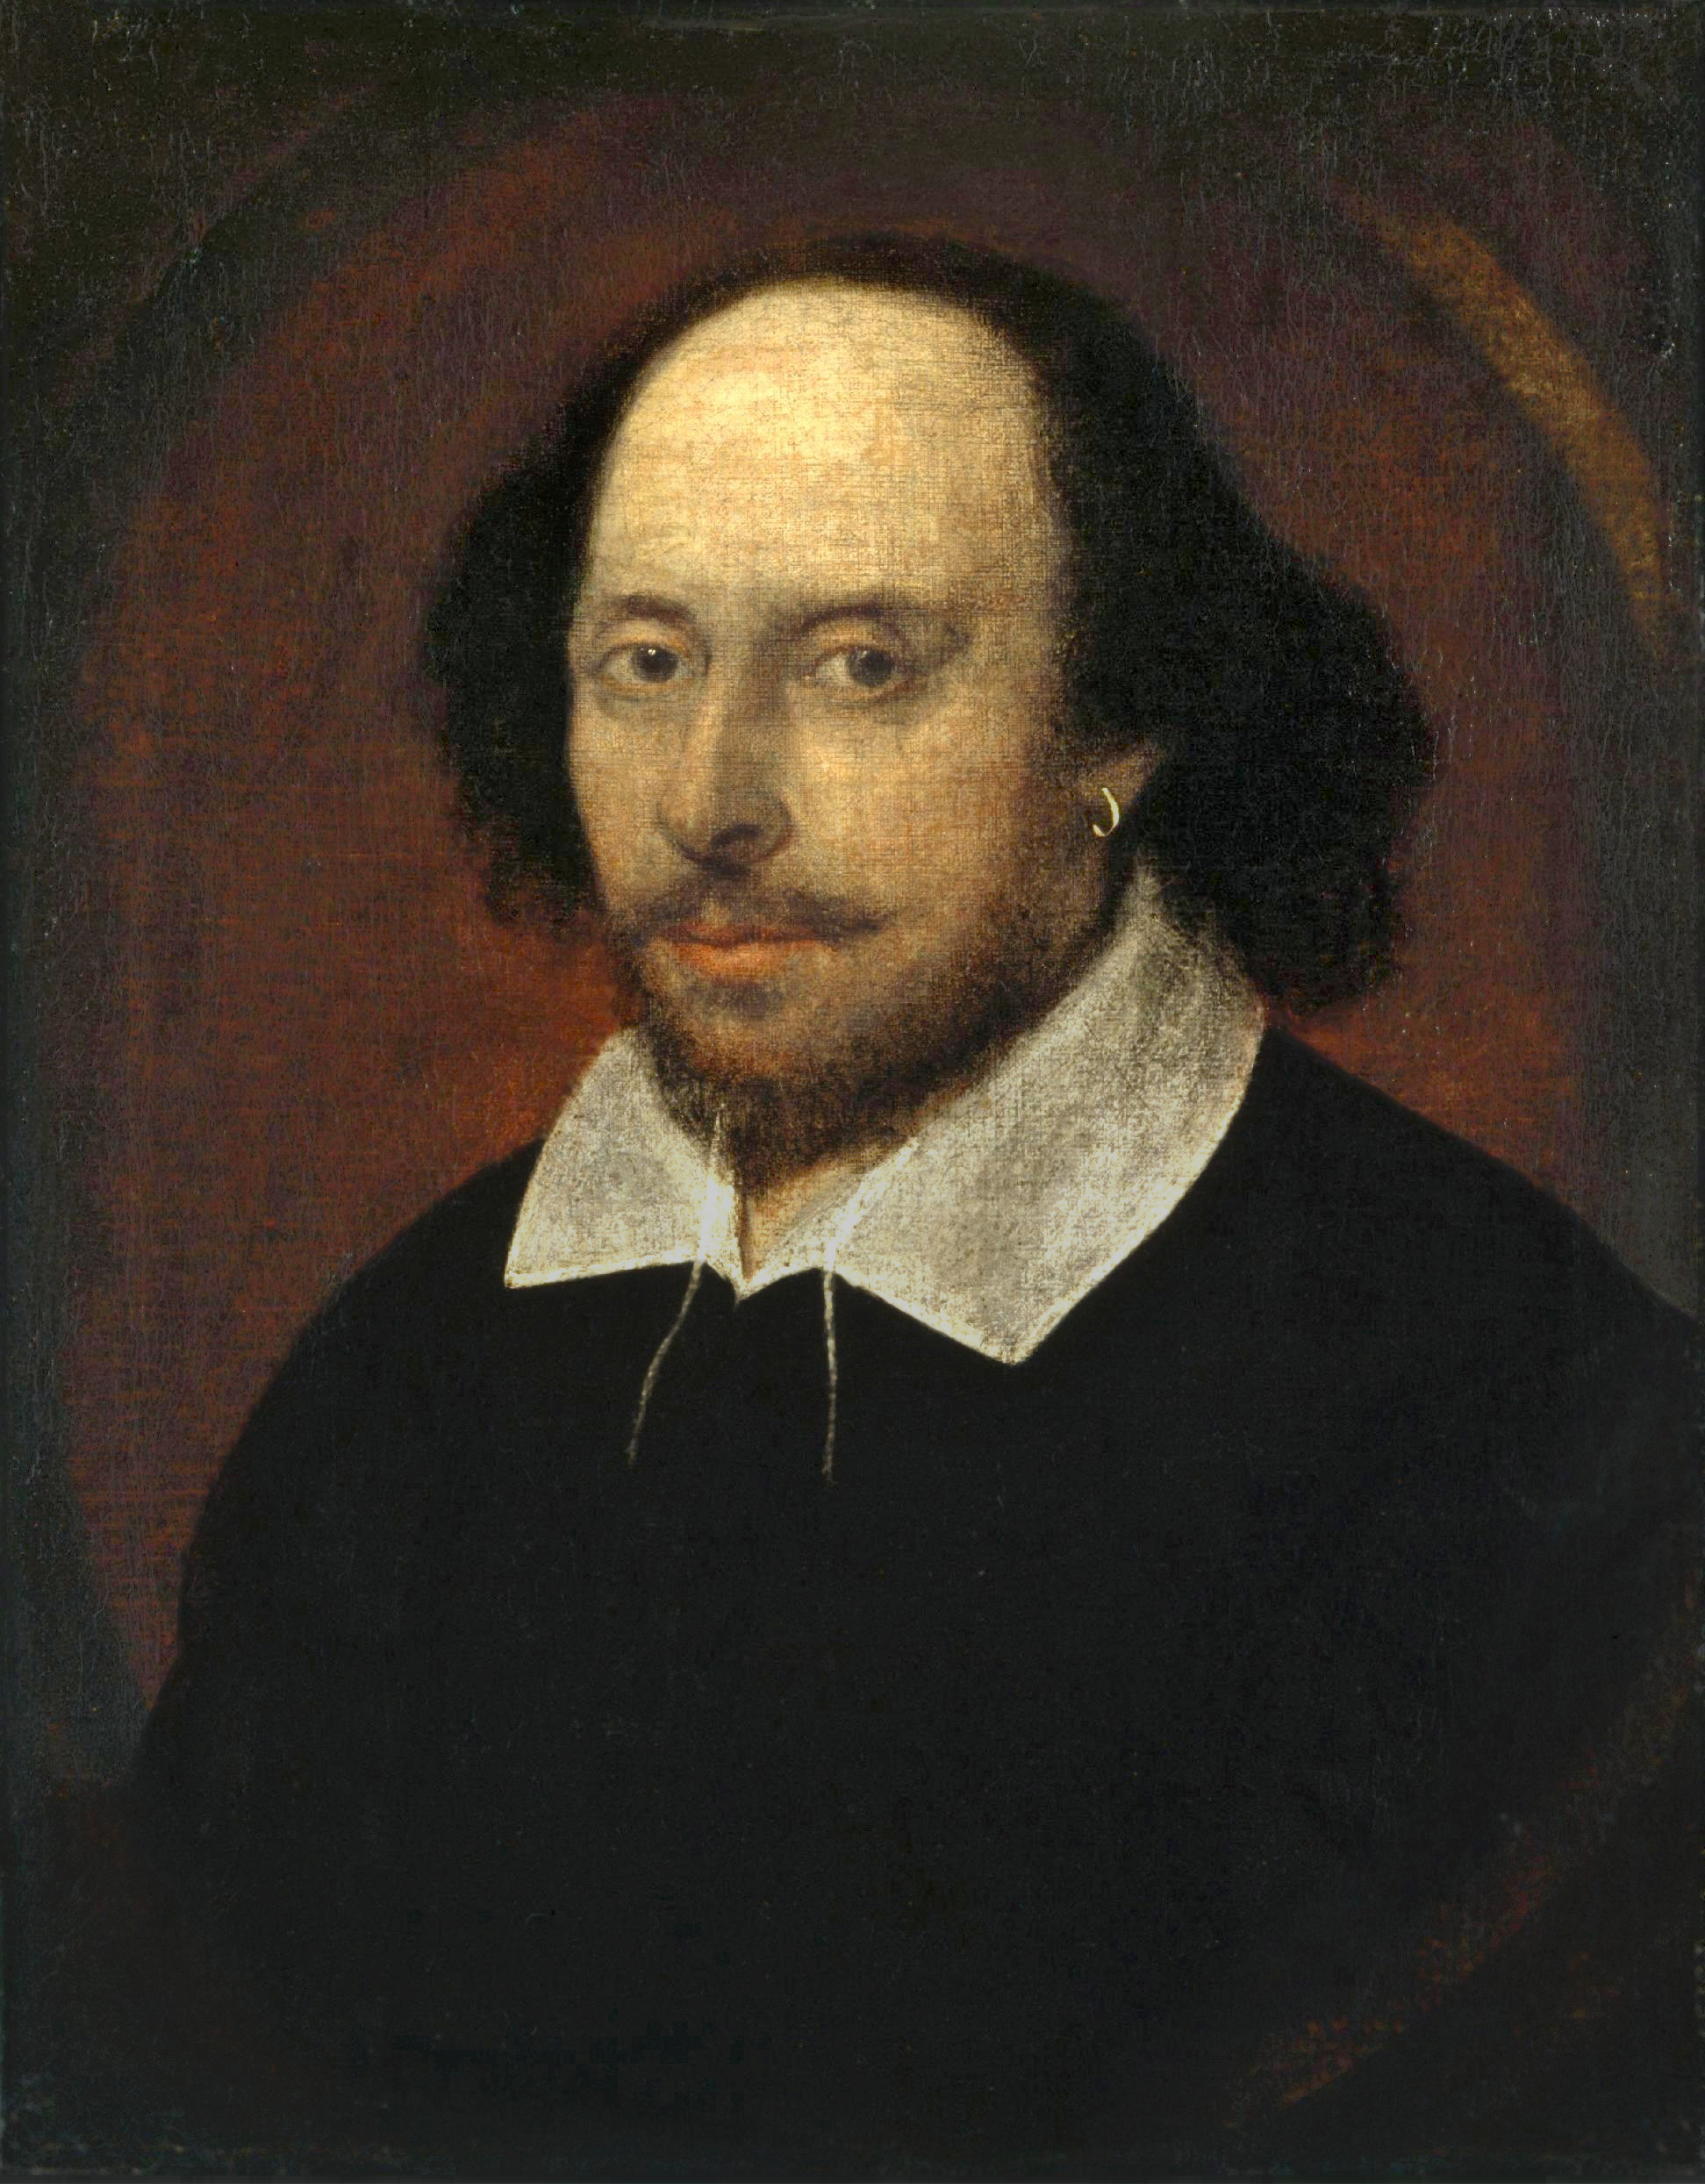 William Shakespeare(1564 to 1616)